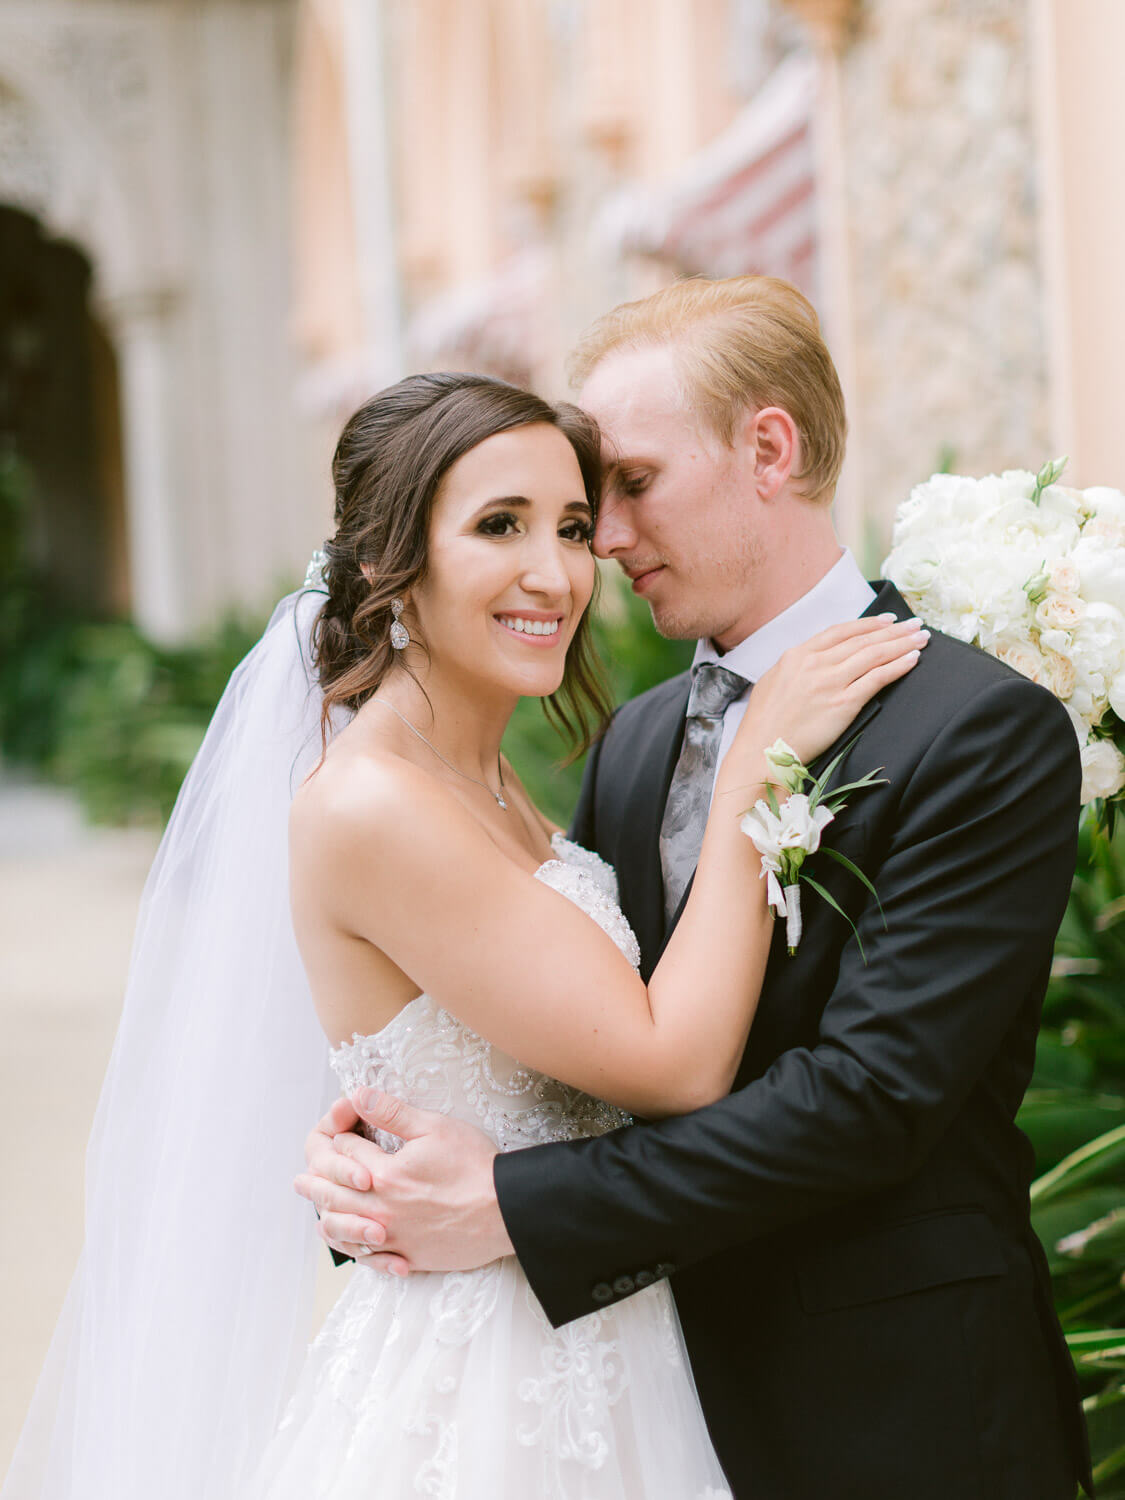 romantic wedding couple portrait in Monserrate Palace Sintra by Portugal Wedding Photographer